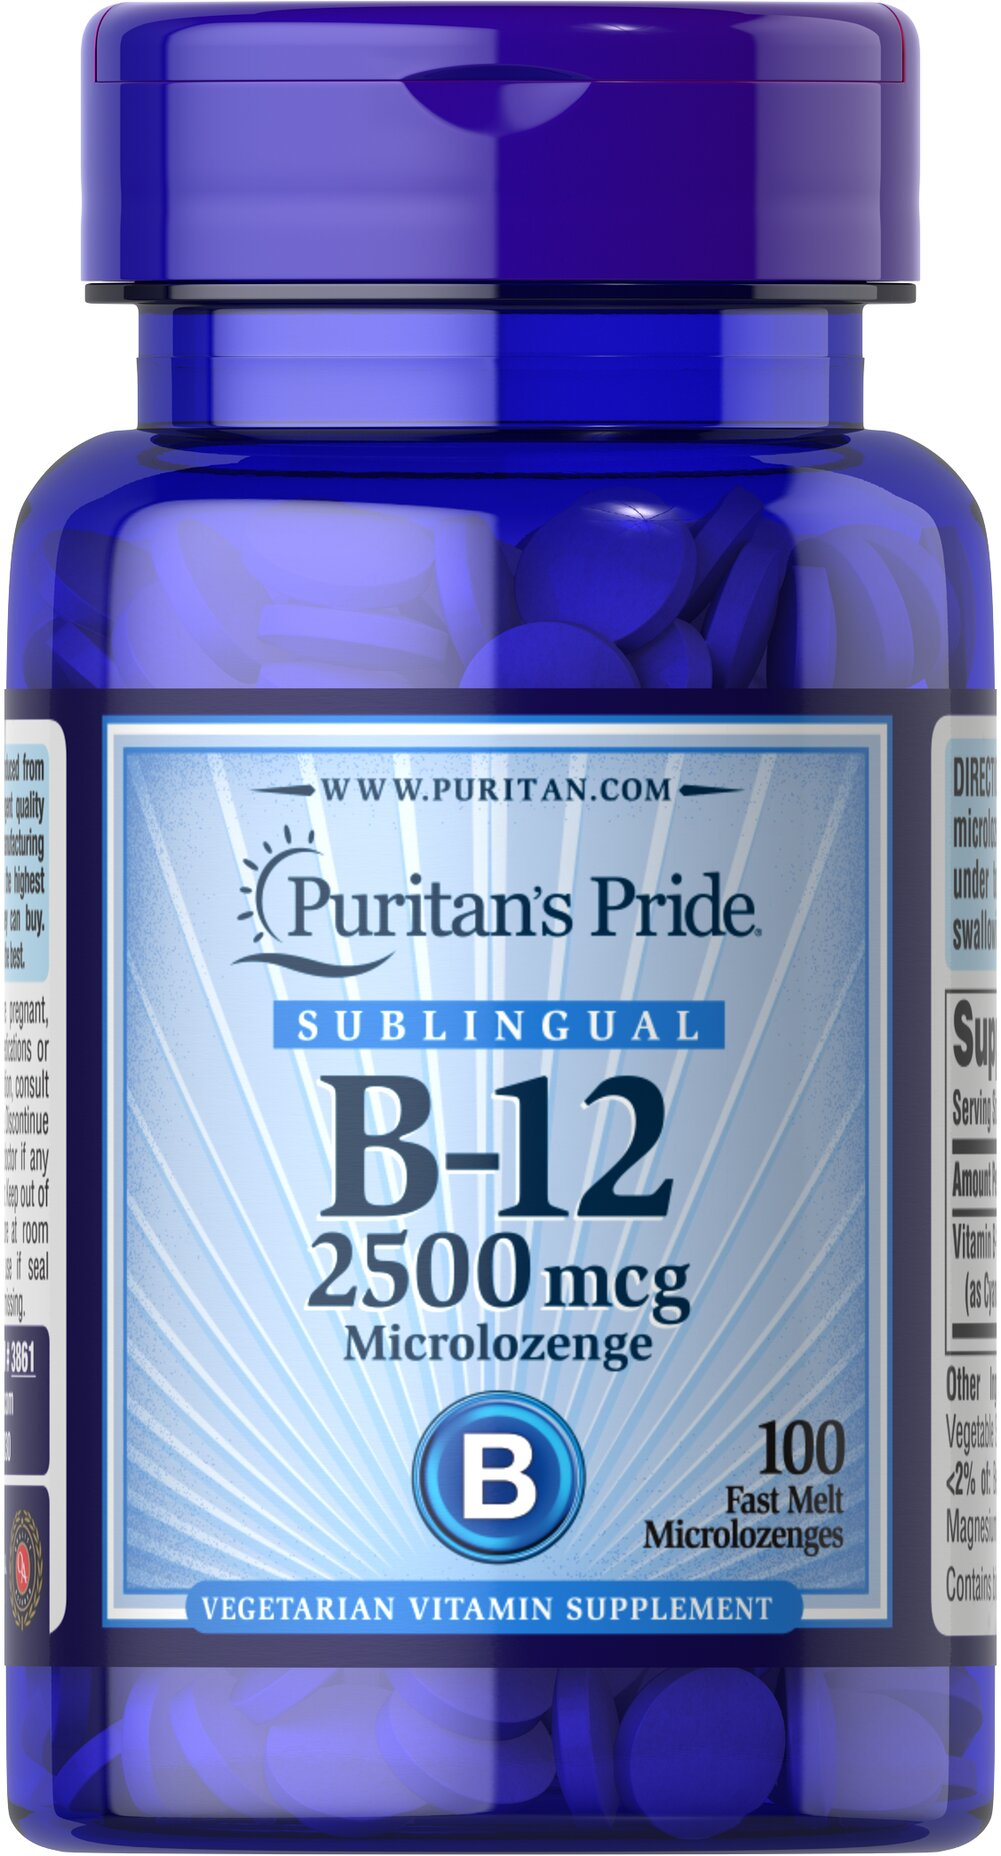 Vitamin B-12 2500 mcg Sublingual <p>Puritan's Pride's unique B-12  lozenges and dots deliver essential B vitamins for energy metabolism in the body.** Vitamin B-12 is also essential for the normal formation of blood cells, contributes to the health of the nervous system, and helps maintain circulatory health.** Adults can take one lozenge or dot daily with a meal. Place lozenge or dot under tongue for 30 seconds before swallowing.</p> 100 Microlozenges 2500 mcg $19.59